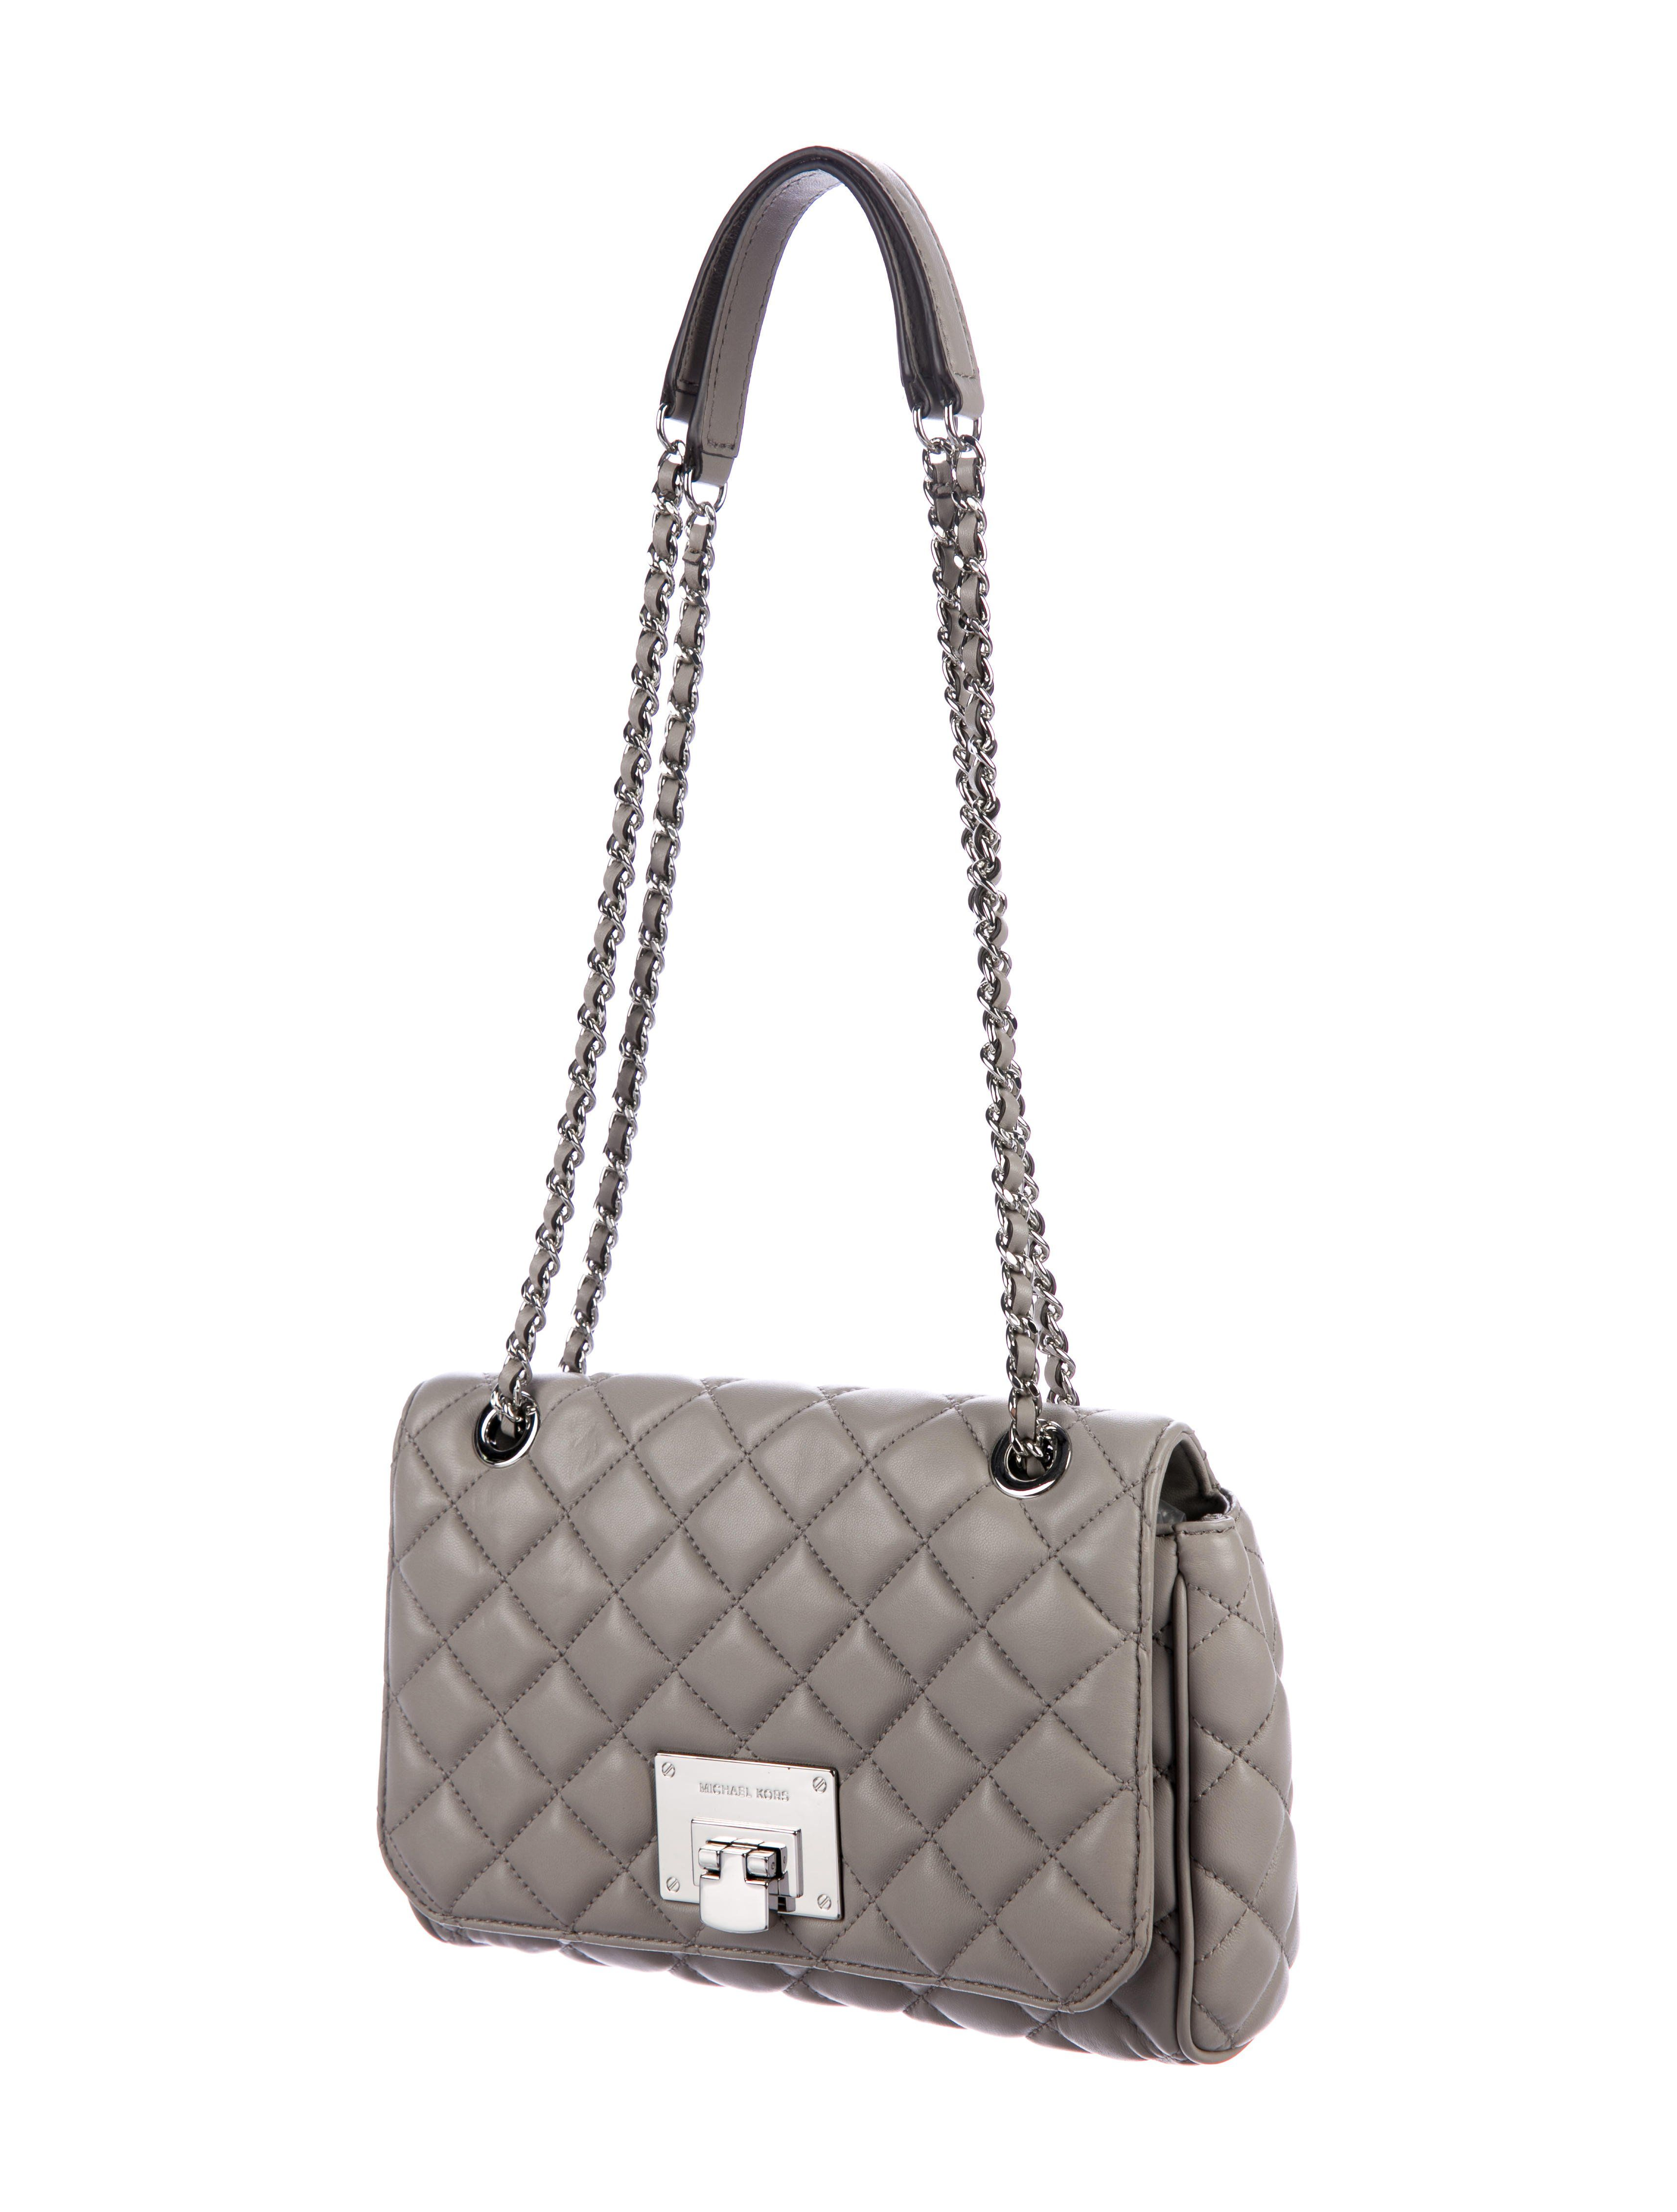 7df5823bcb9d Grey quilted leather Michael Michael Kors crossbody bag with silver-tone  hardware